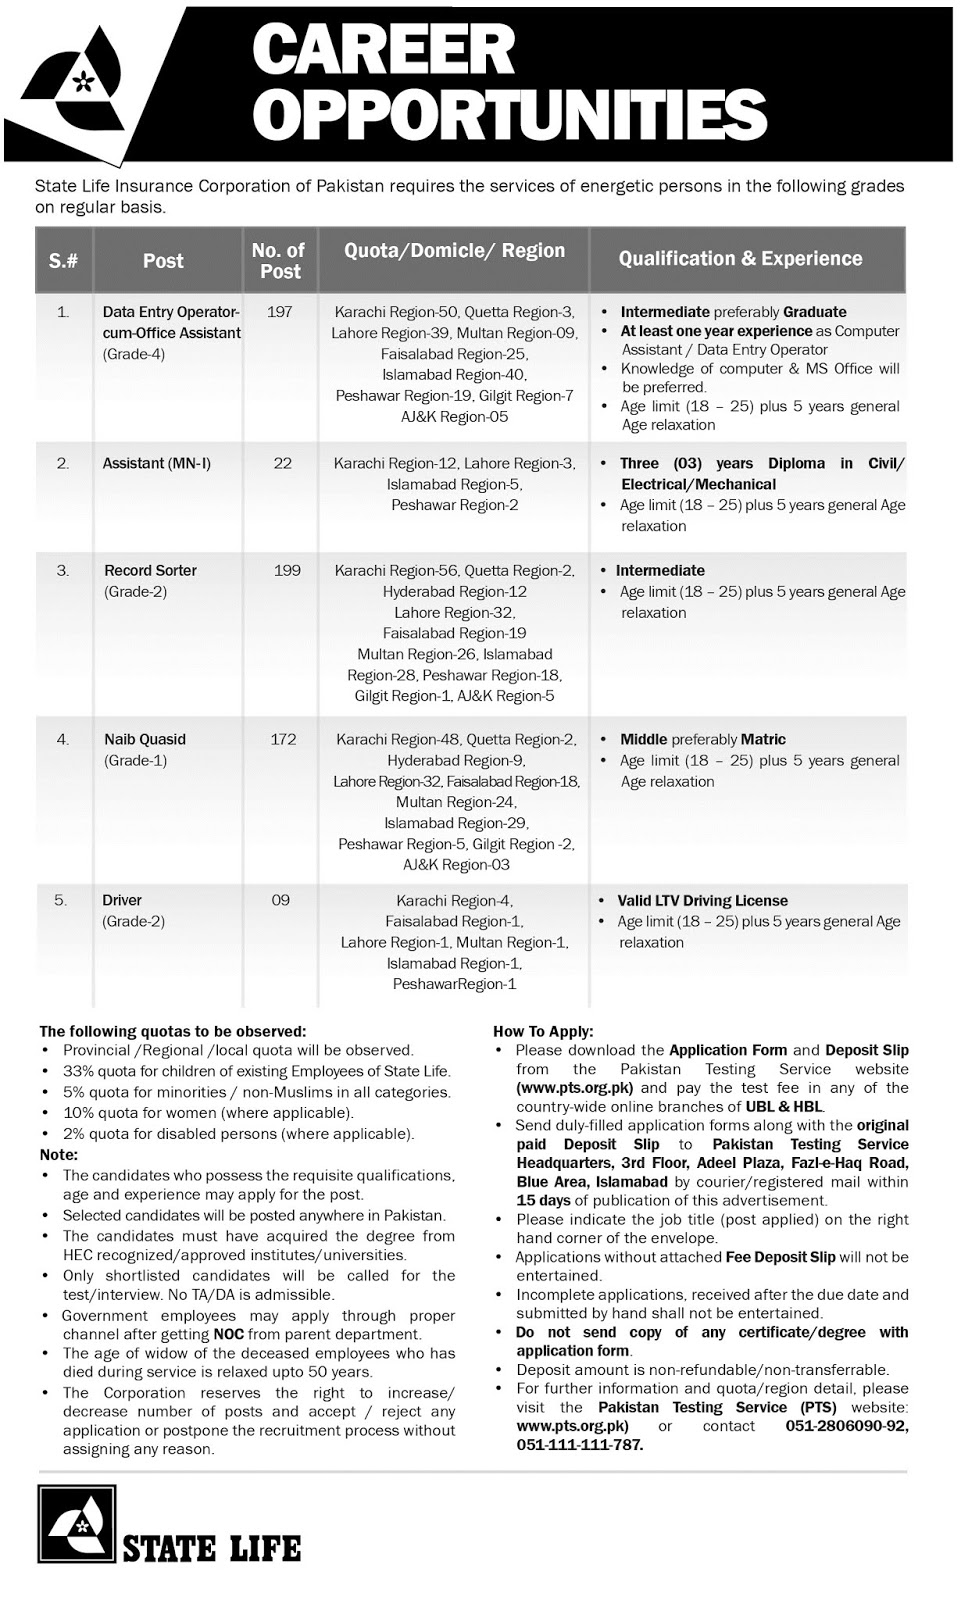 State Life Insurance Corporation of Pakistan Jobs 2019